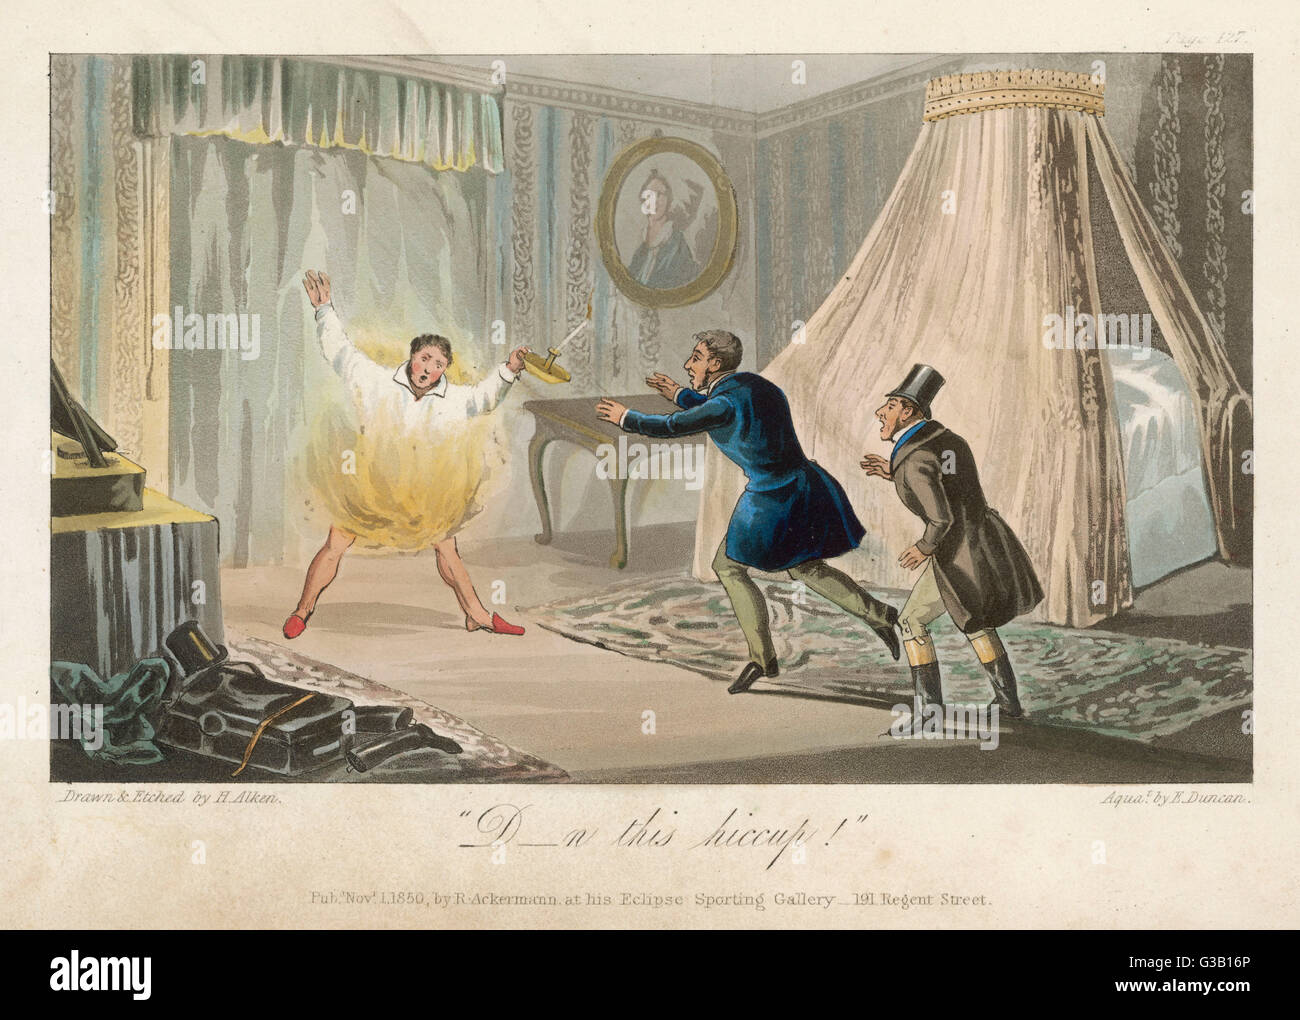 """""""Damn this hiccup!"""" As a final act of folly this  English eccentric sets fire to  his nightshirt - Stock Image"""